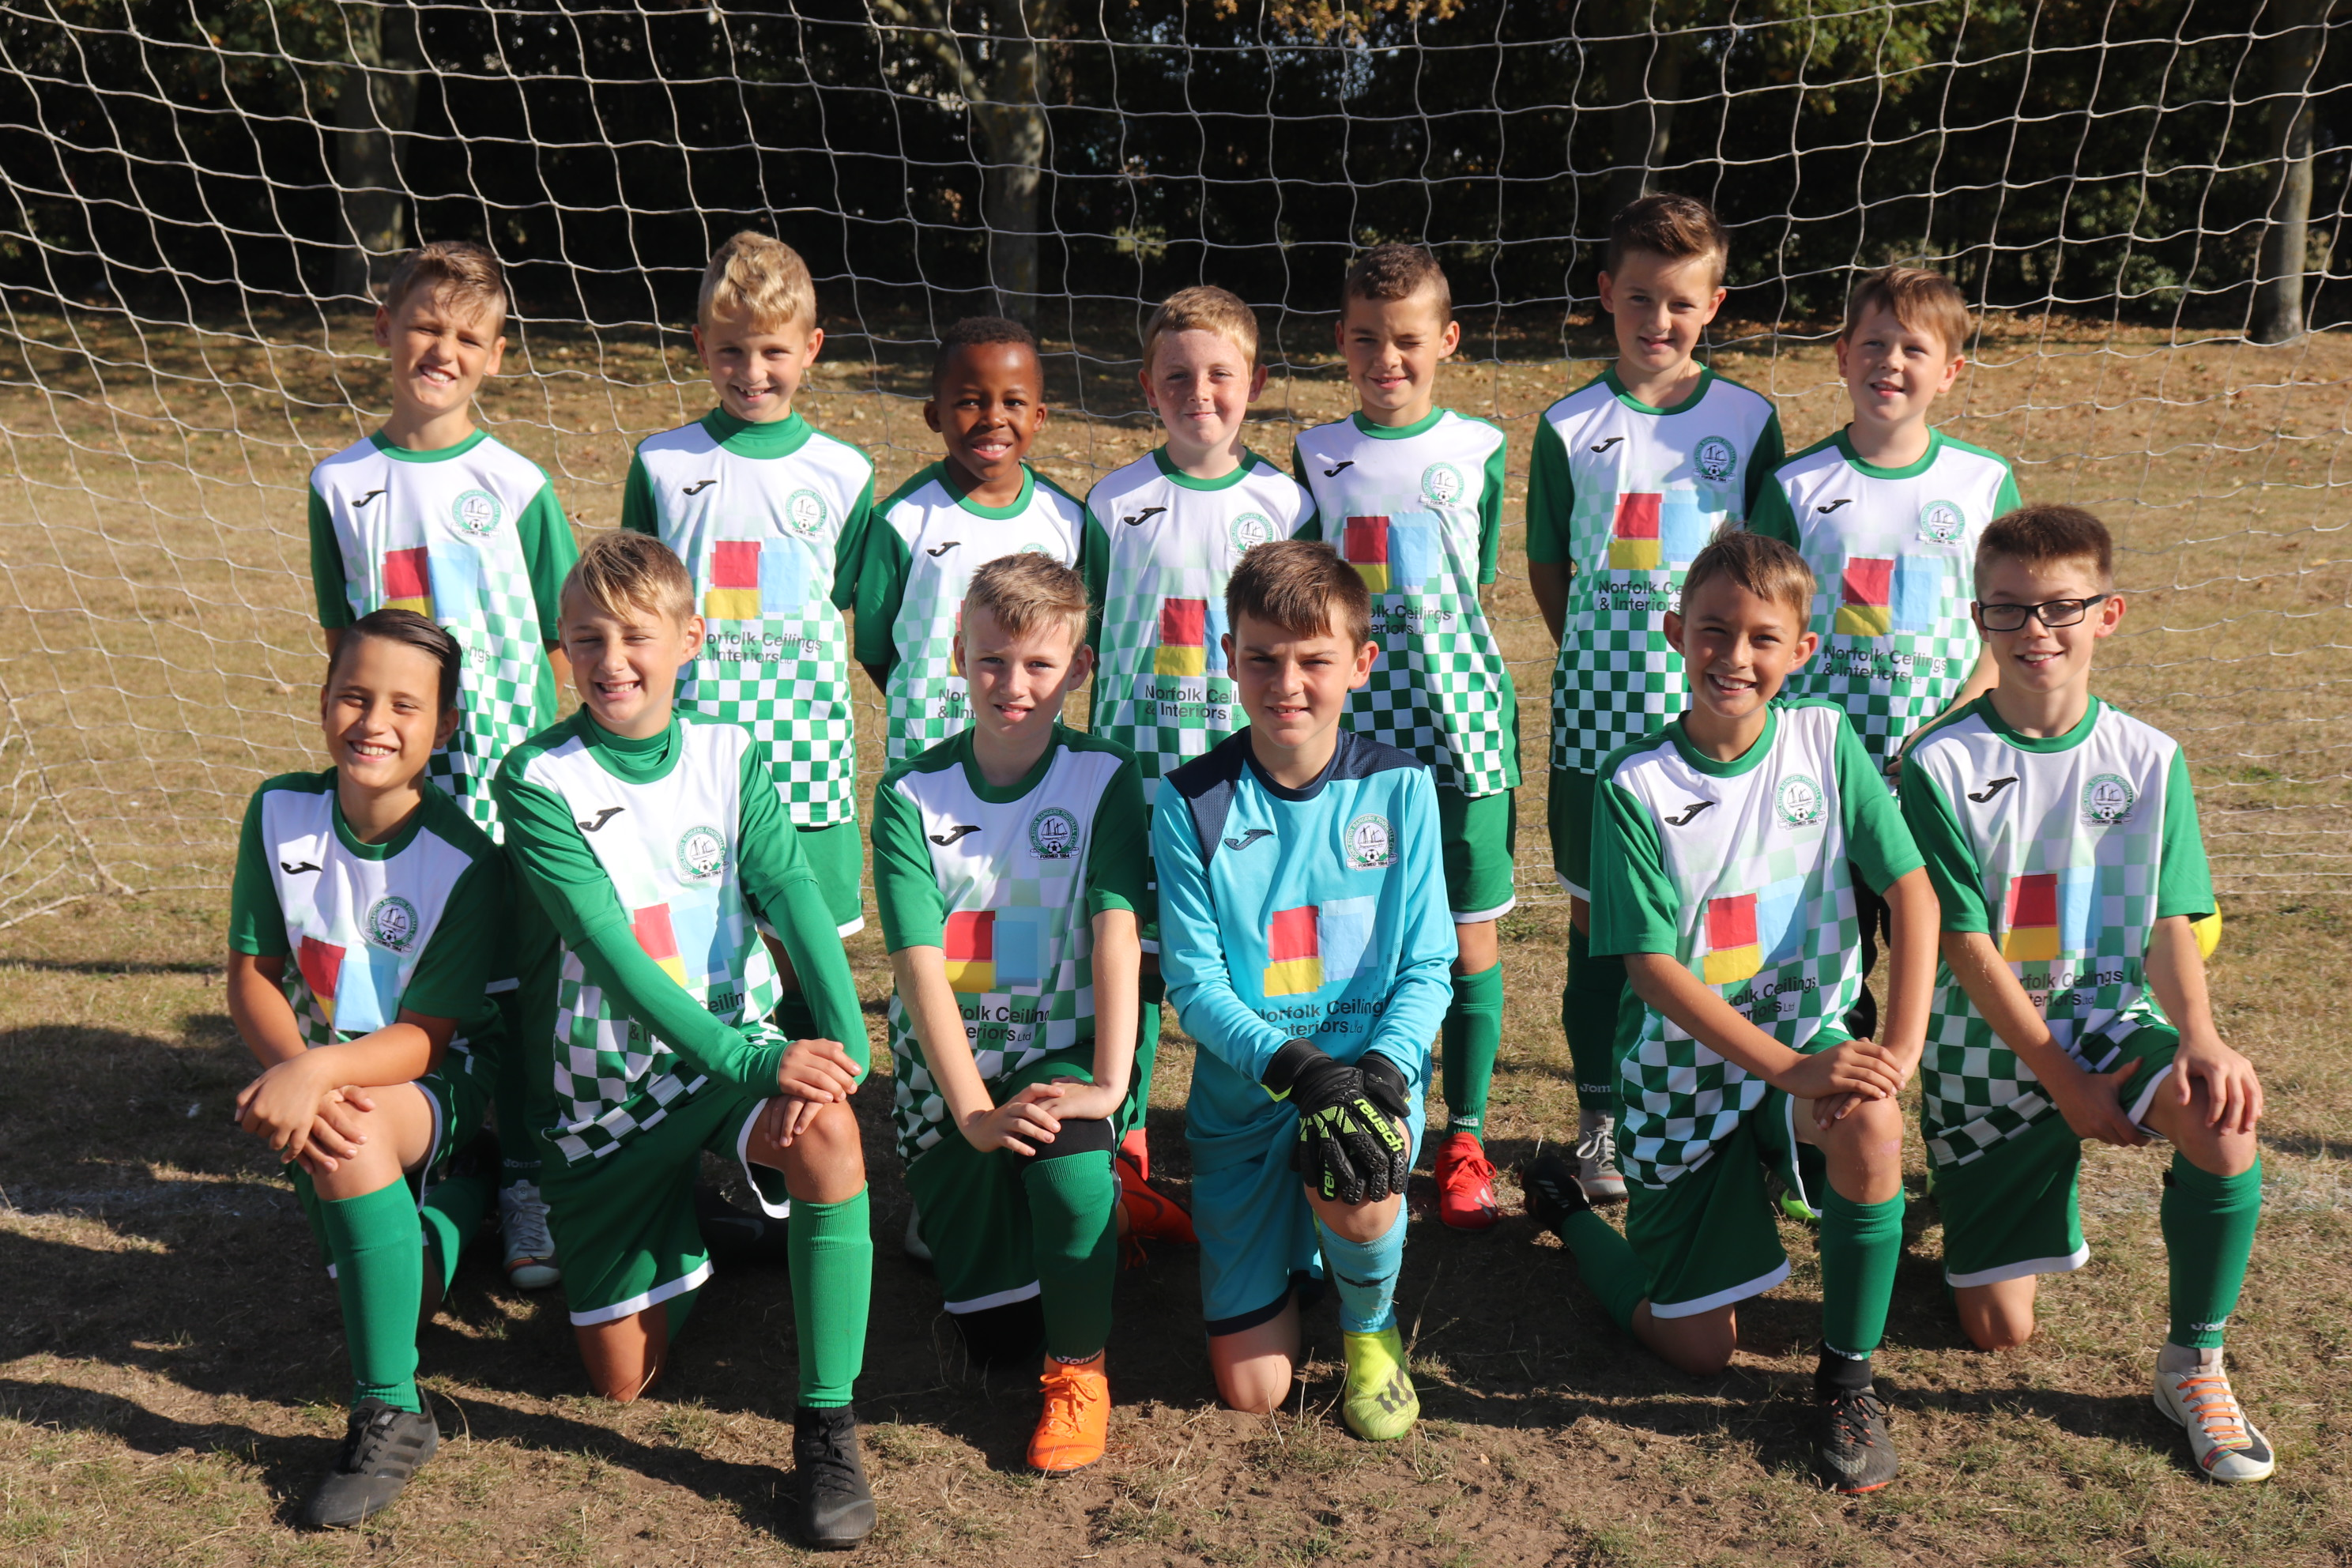 U11 Harriers Kit